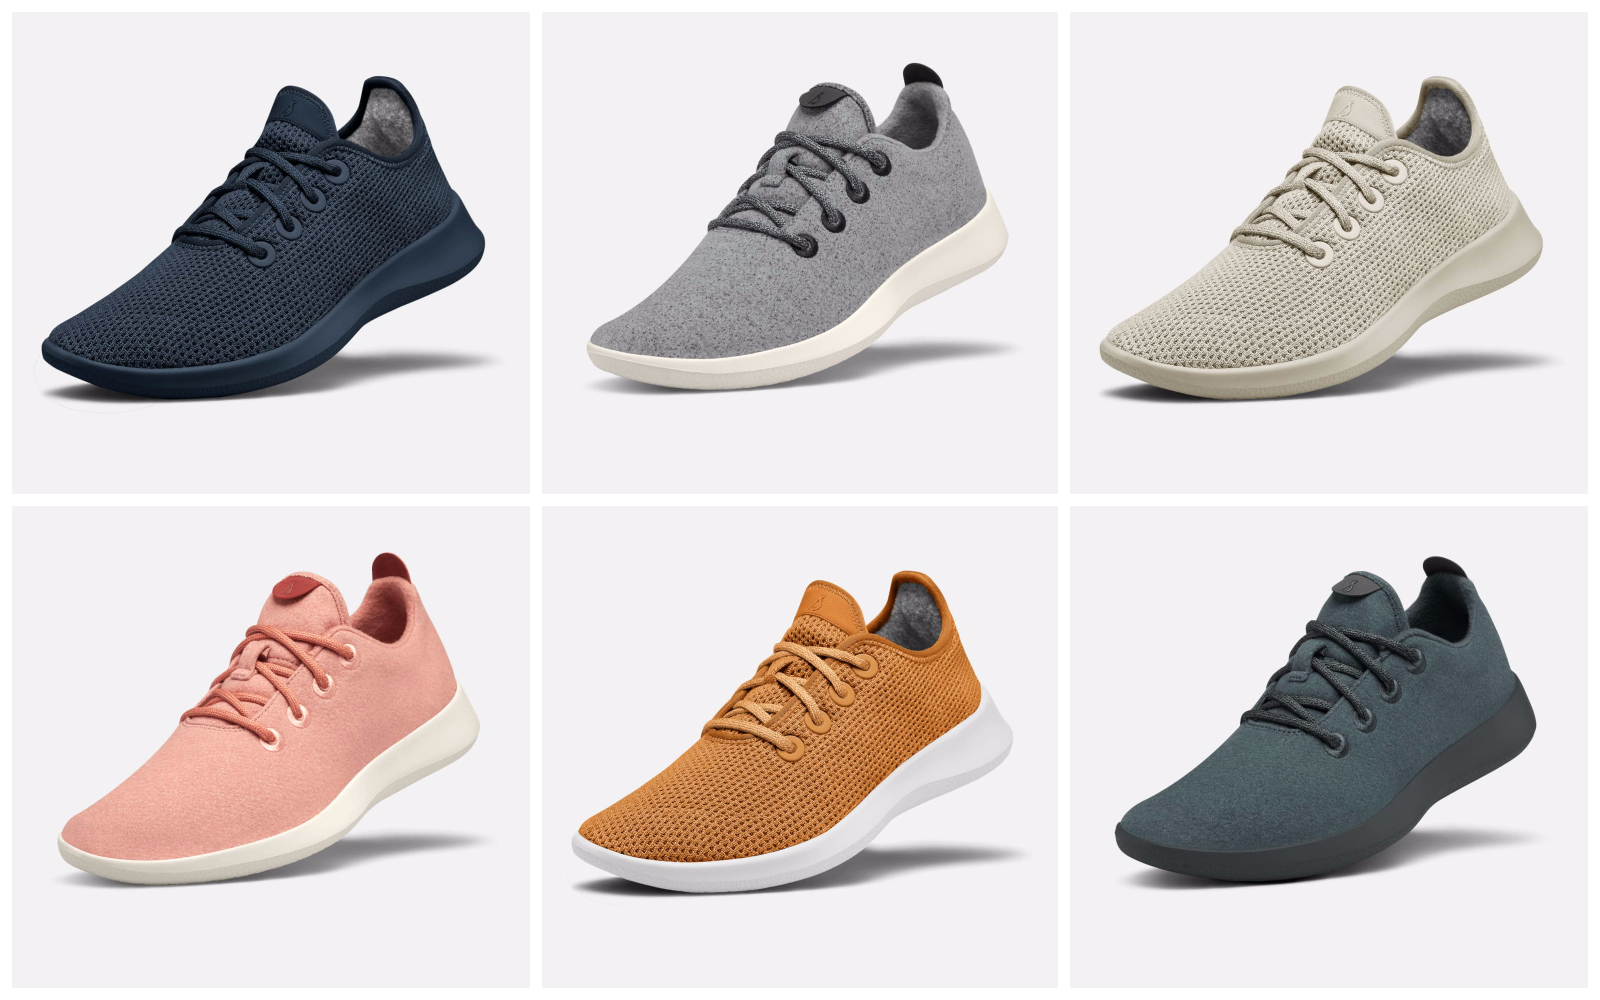 Allbirds just dropped 7 new sneaker colors inspired by California's super bloom